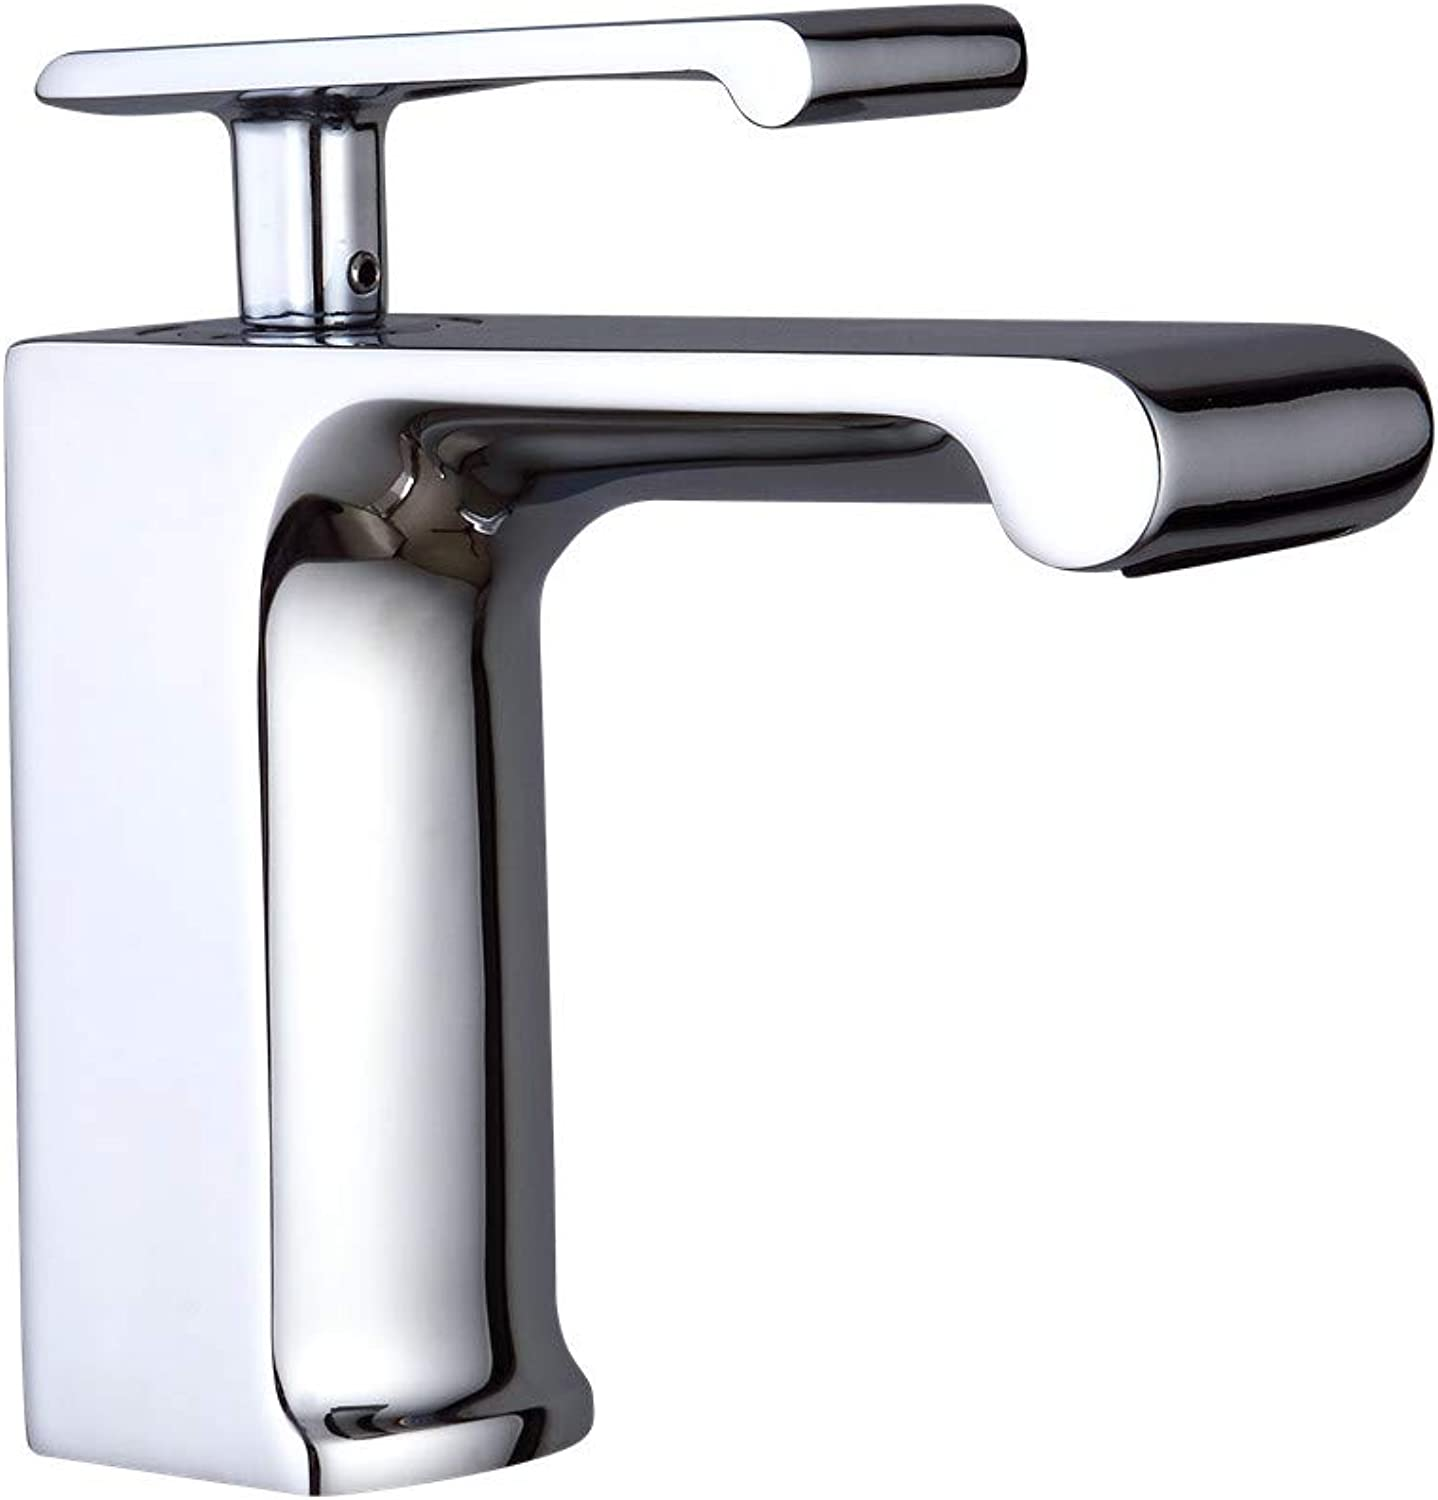 Wash Basin Mixer Tap Modern Bathroom Sink Faucet Single Lever Basin Sink Mixer Tap Brass With Chrome Finish